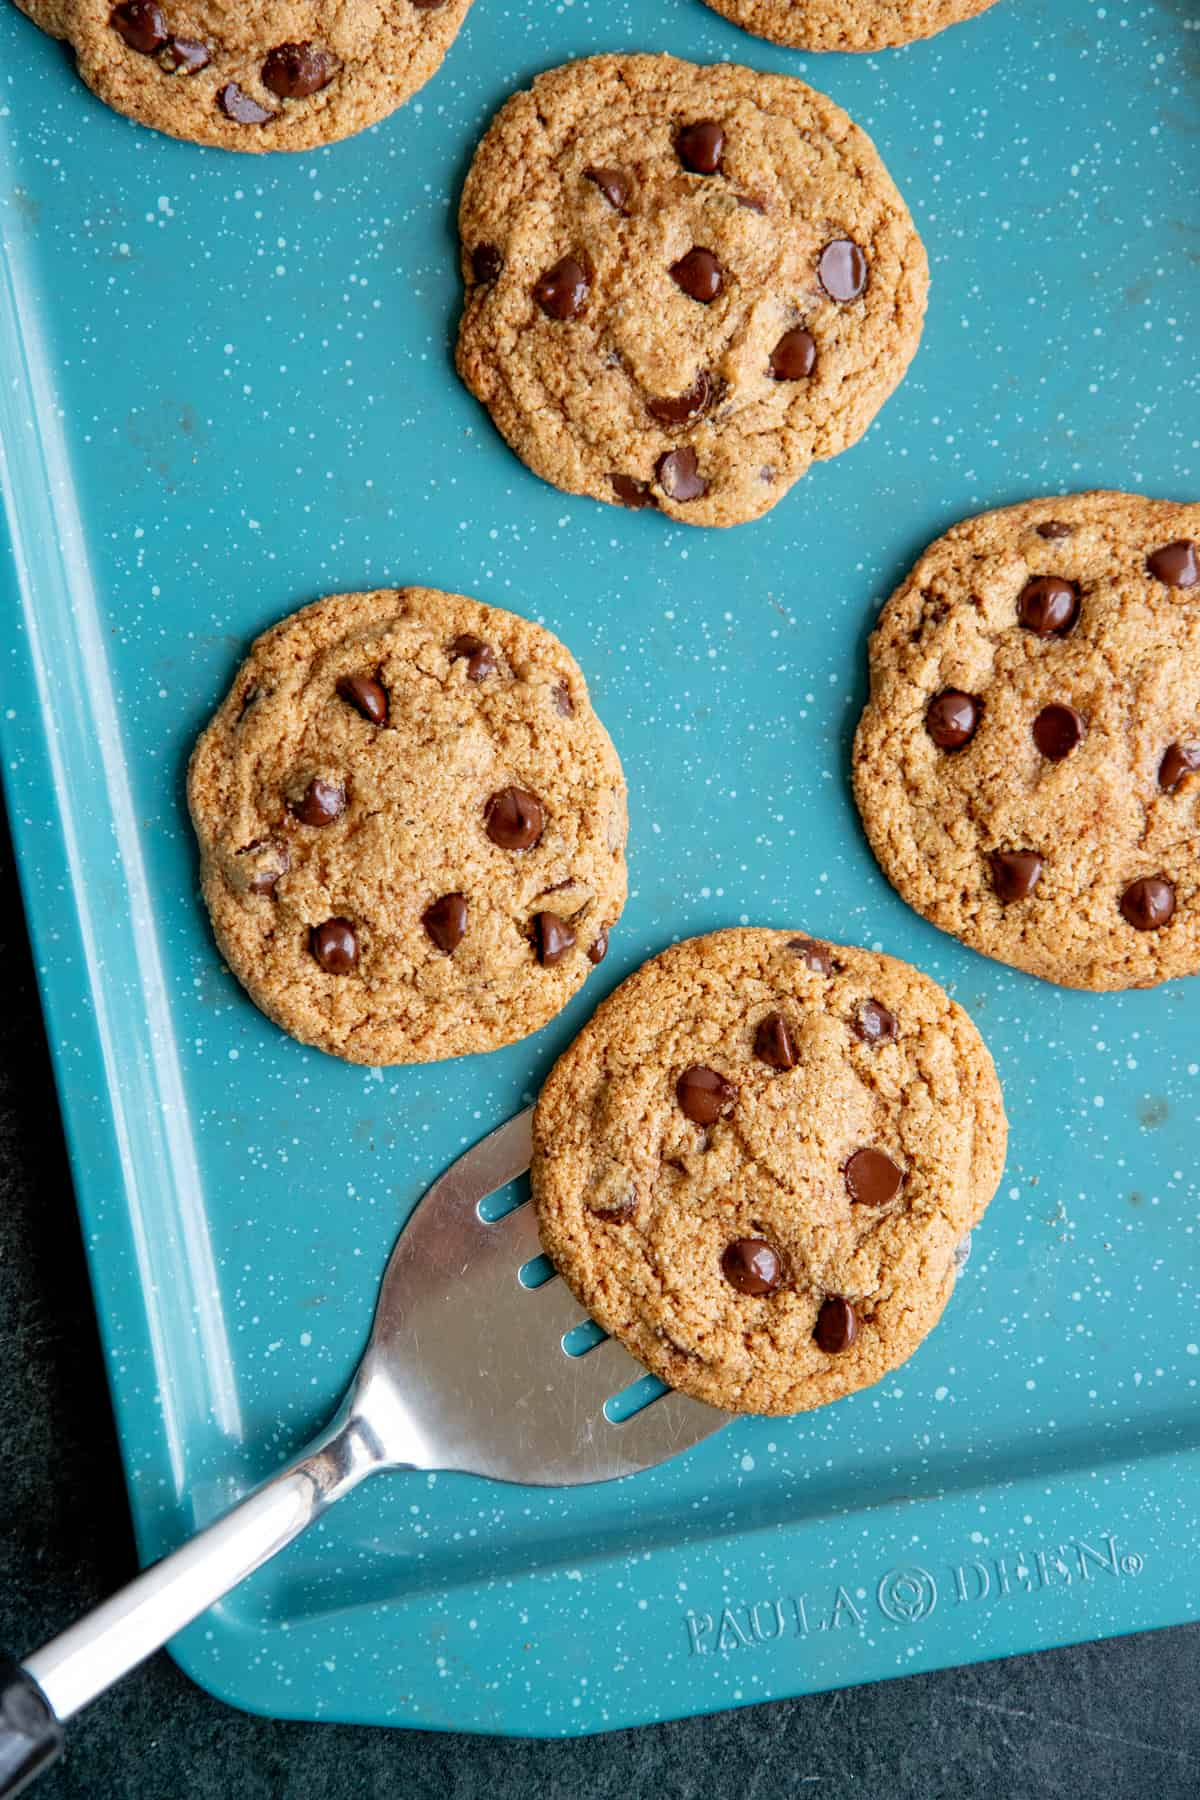 A spatula slides under a paleo chocolate chip cookie to remove it from a turquoise baking sheet.